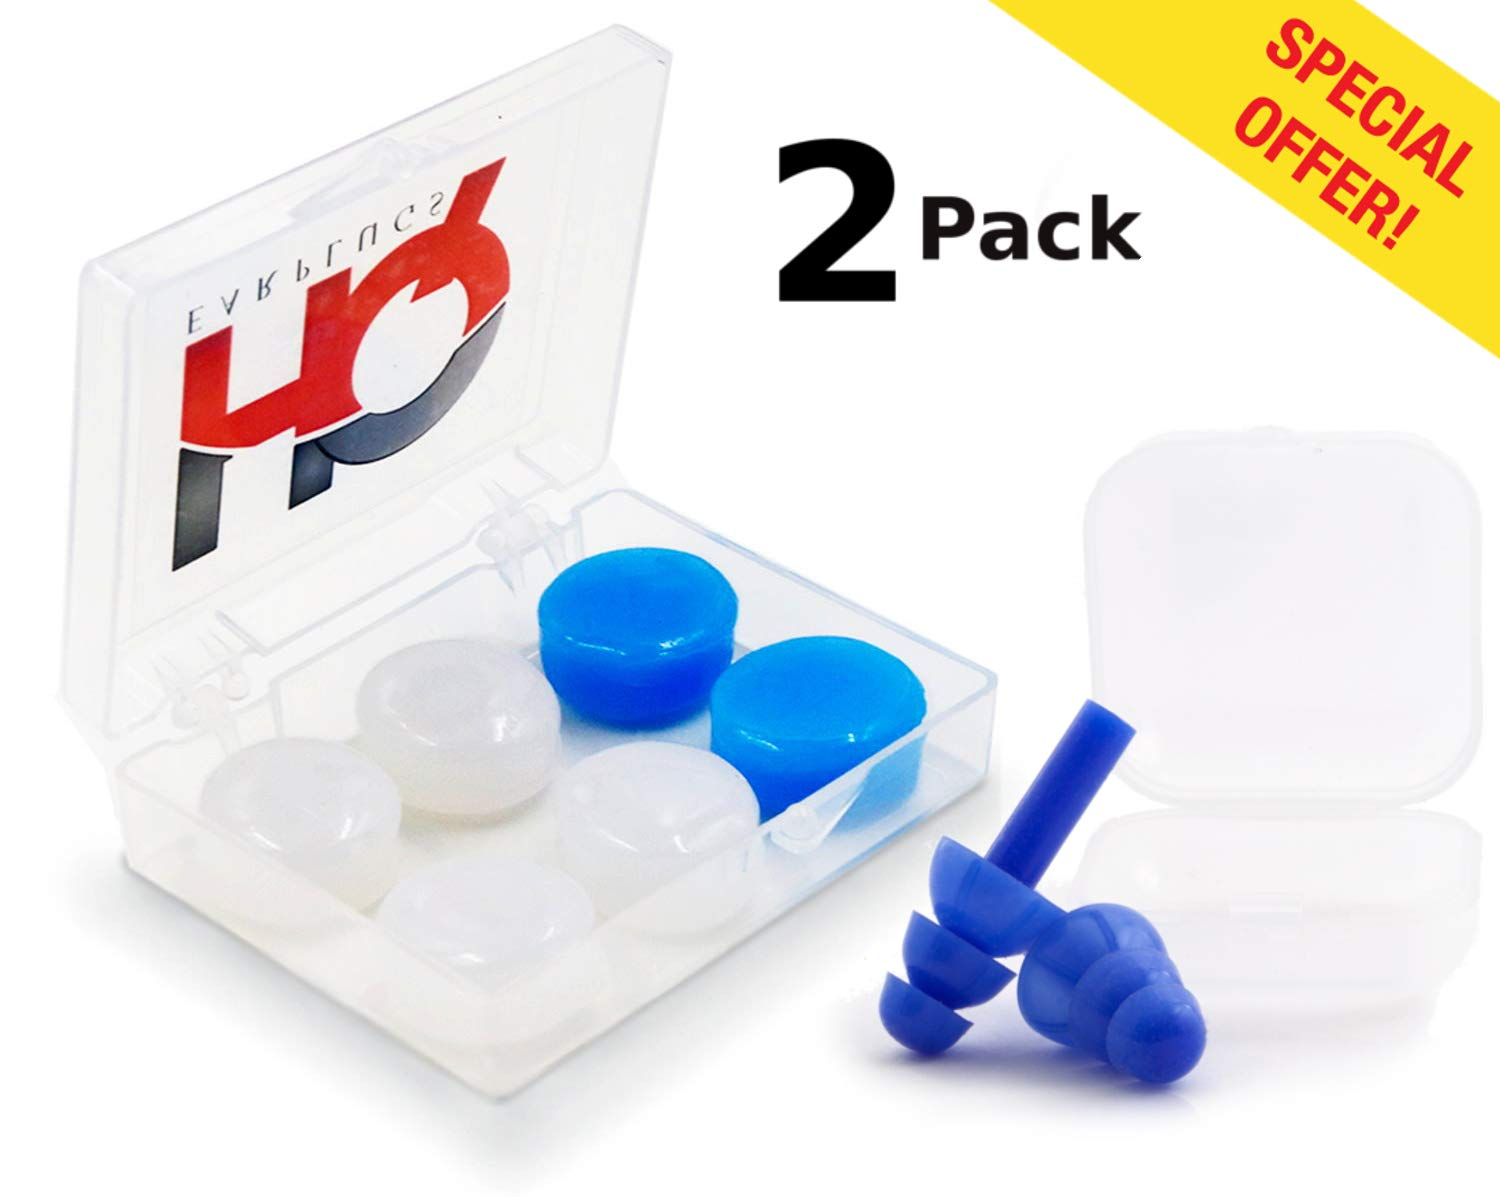 HQ Earplugs Set | Hearing Protection & Waterproff, Swimming, Sleep, Snoring, Travel, Concert, Shooting |4 Pair| Moldable ear plugs, 1 Size Fits All, Kids & Adults. Noise Reduction 25/29 db - Reusable